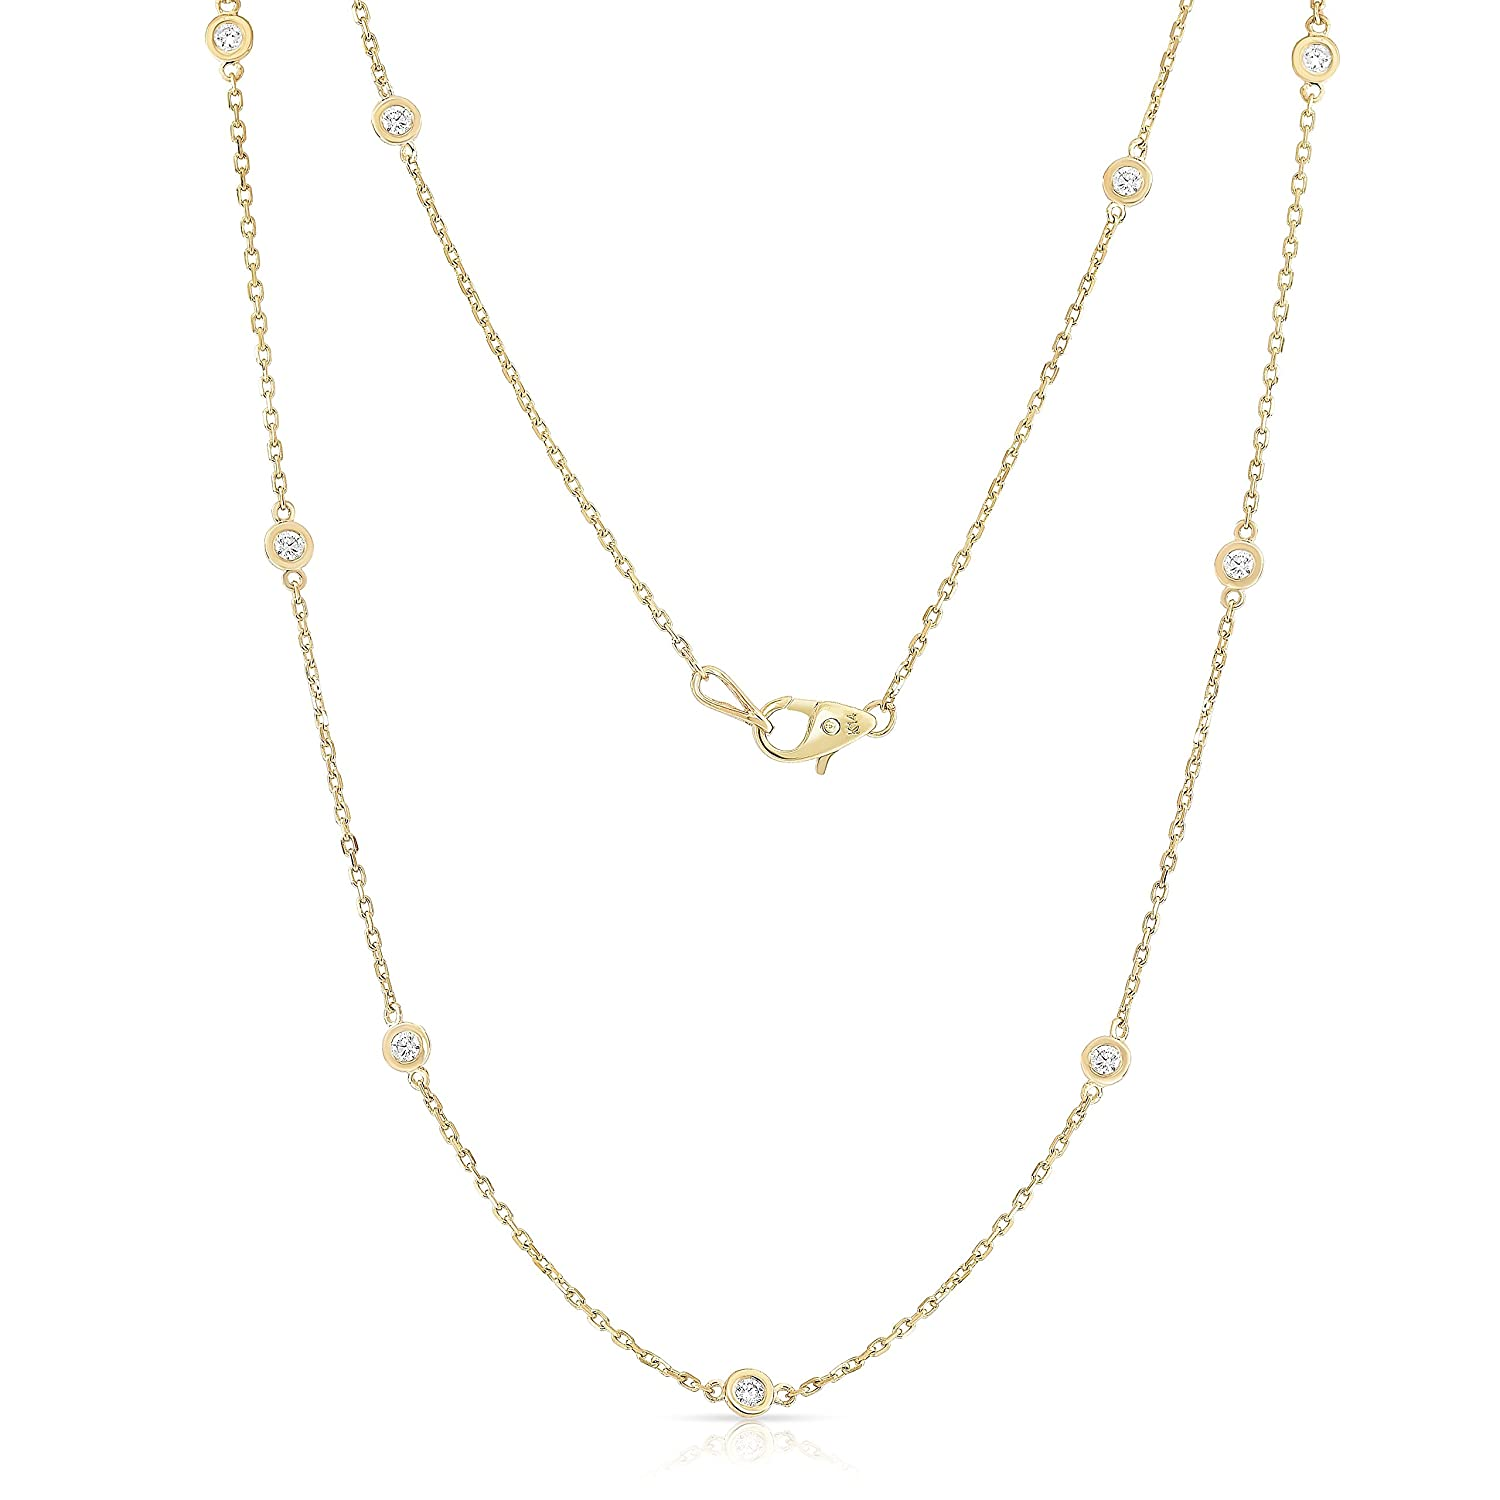 268560df15a046 Noray Designs 14K Yellow Gold Diamond 10 Station Necklace (1 Ct, G-H,  SI2-I1), 18 Inches